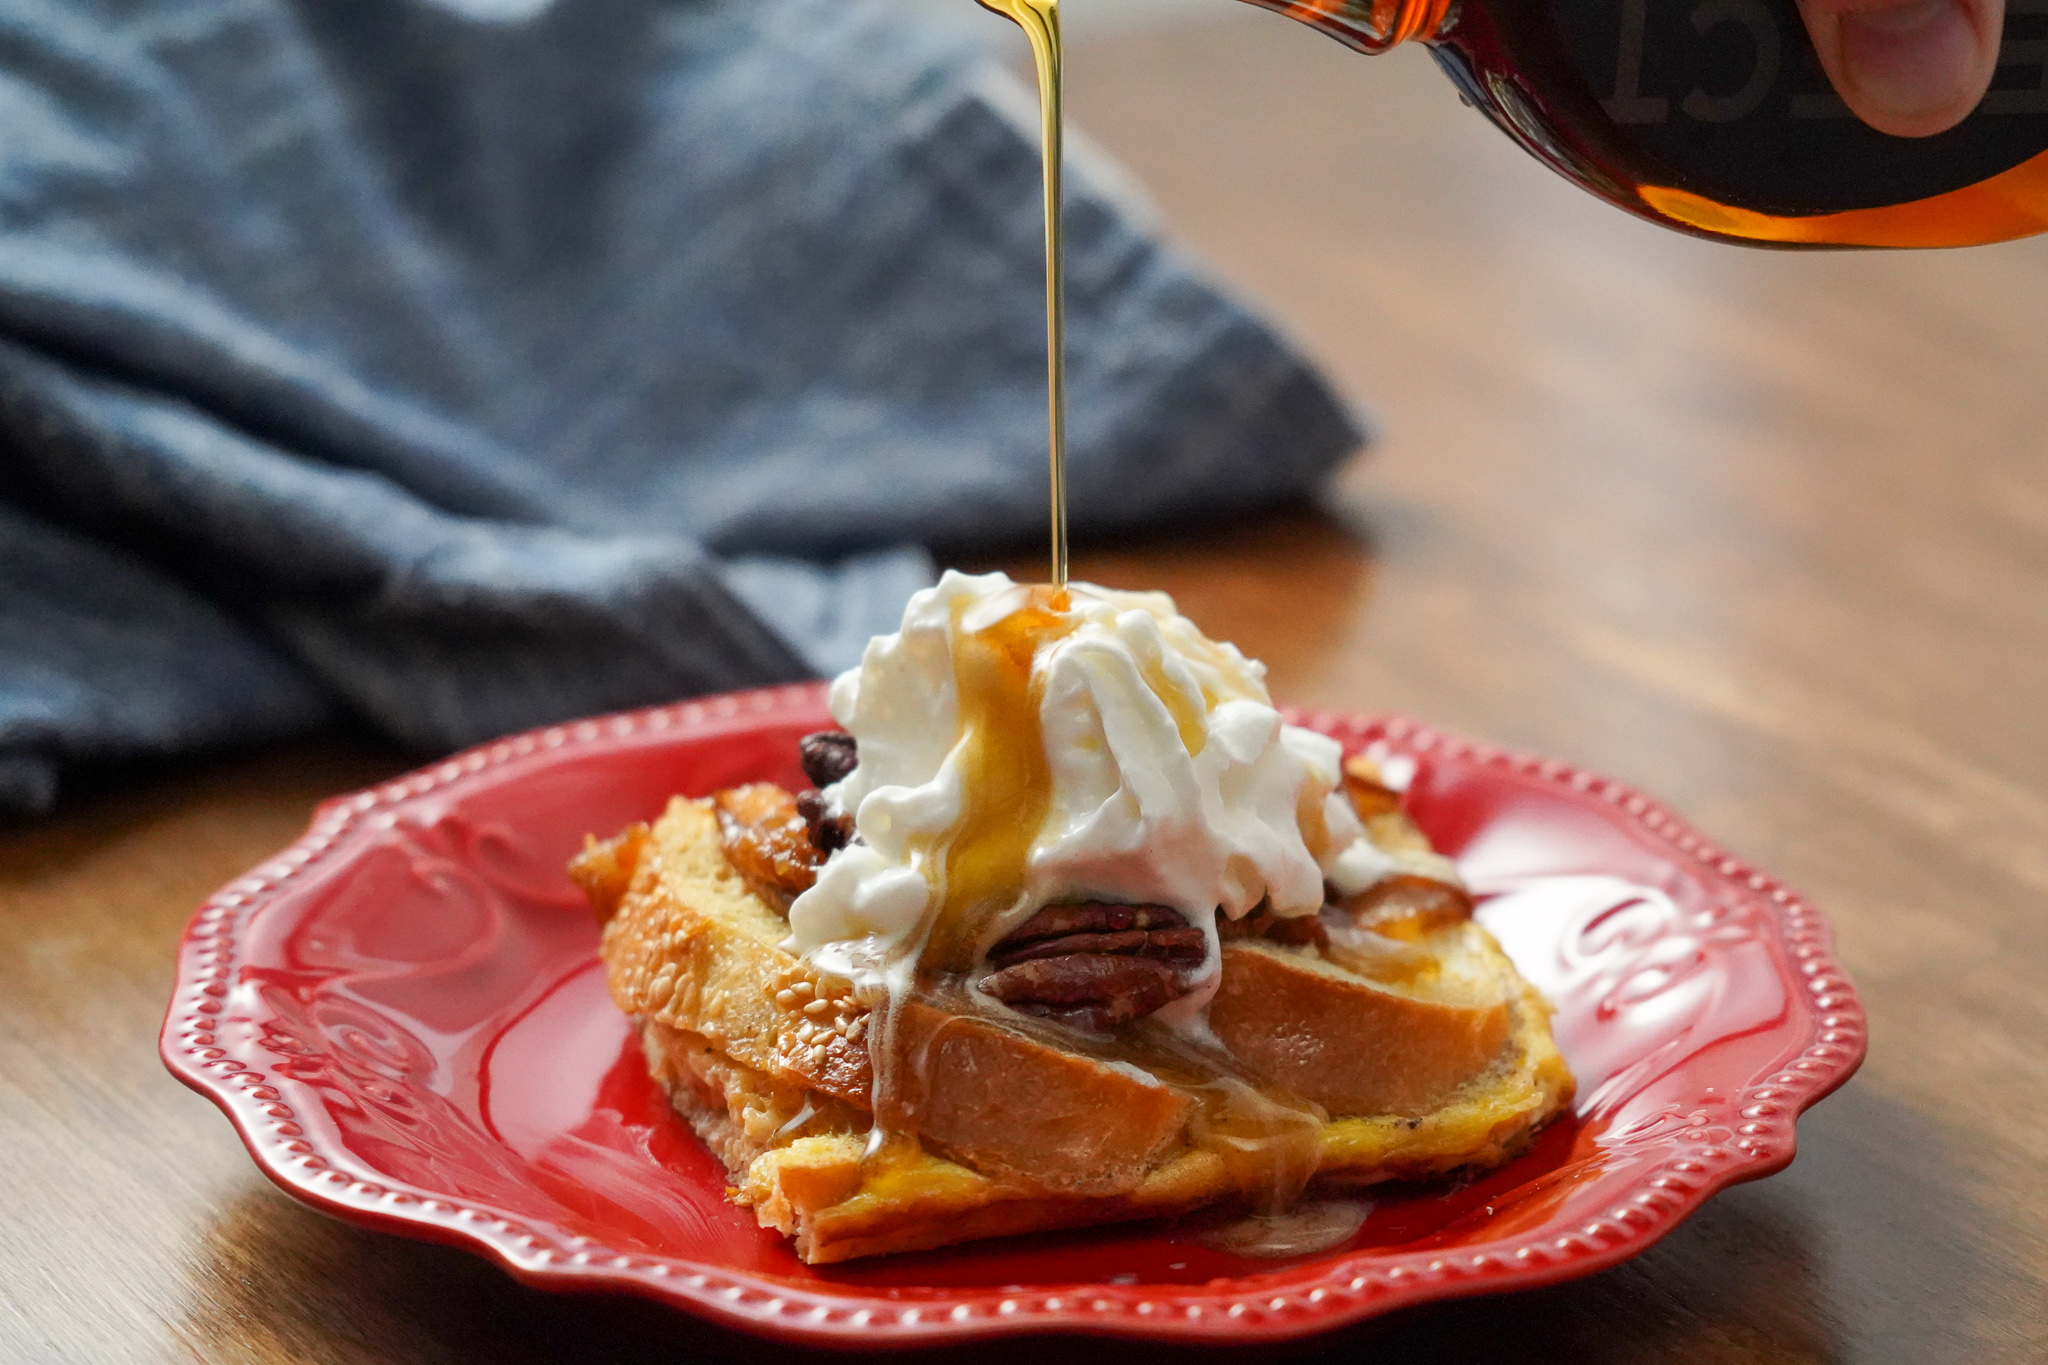 Baked Caramelized Pear and Pecan French Toast